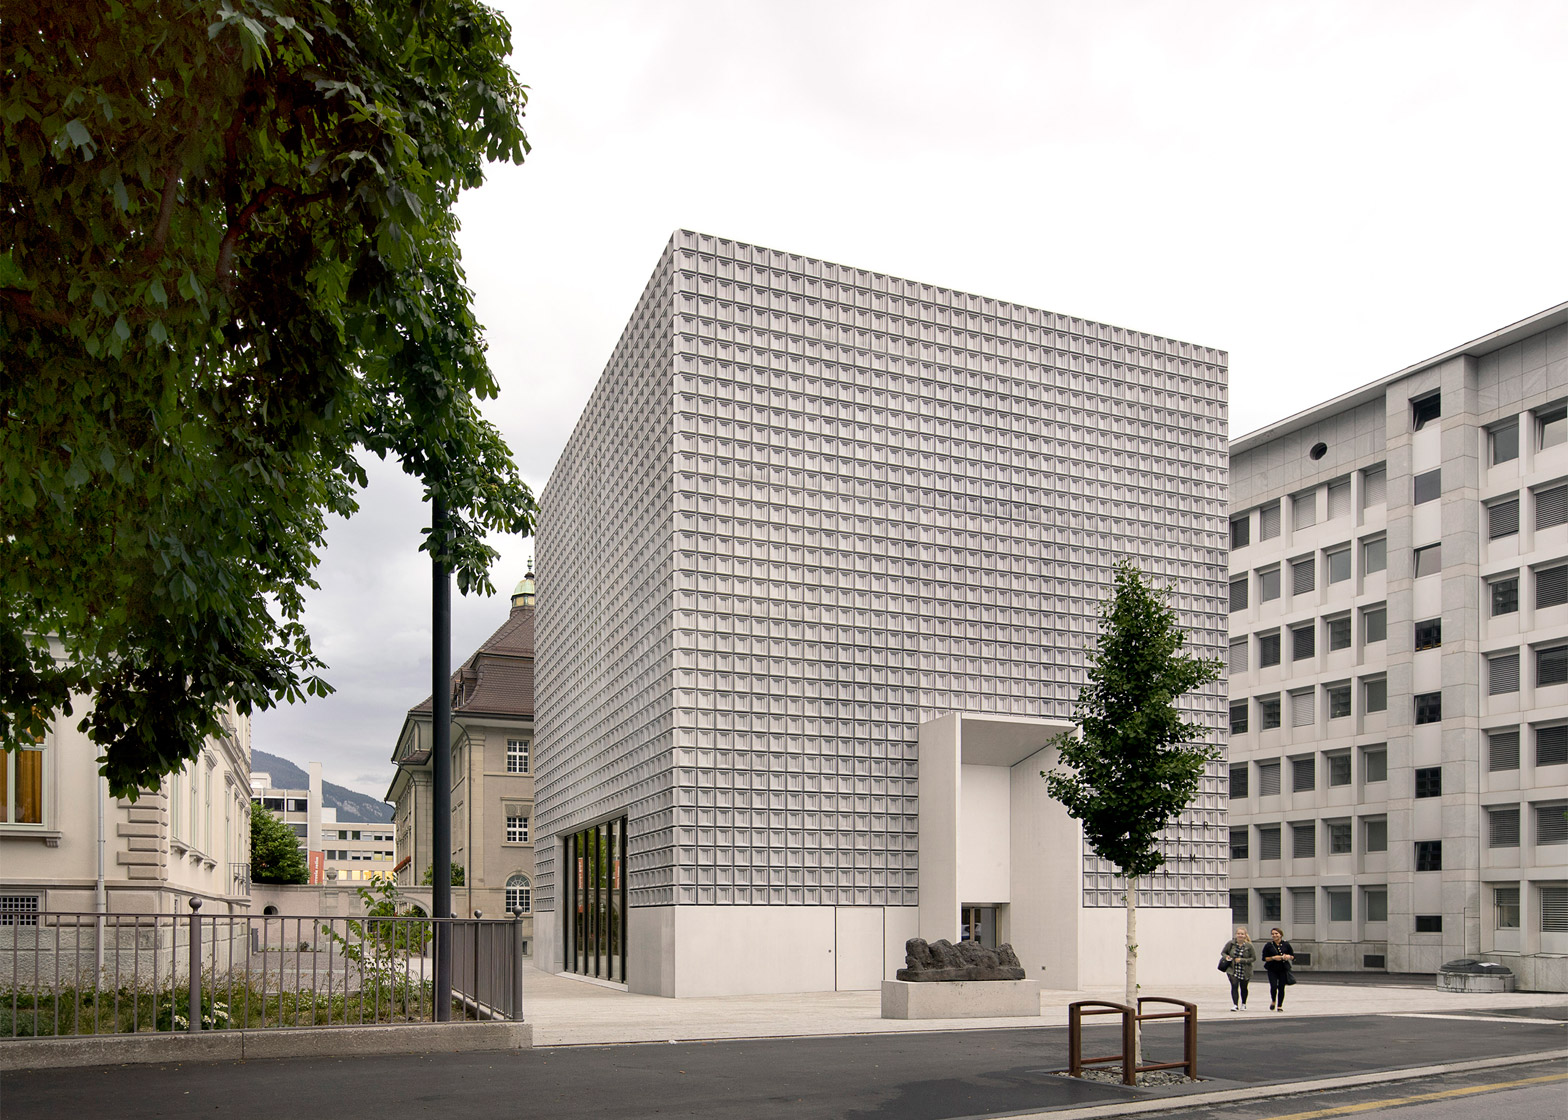 Bündner Kunst museum extension in Chur by Barozzi Veiga